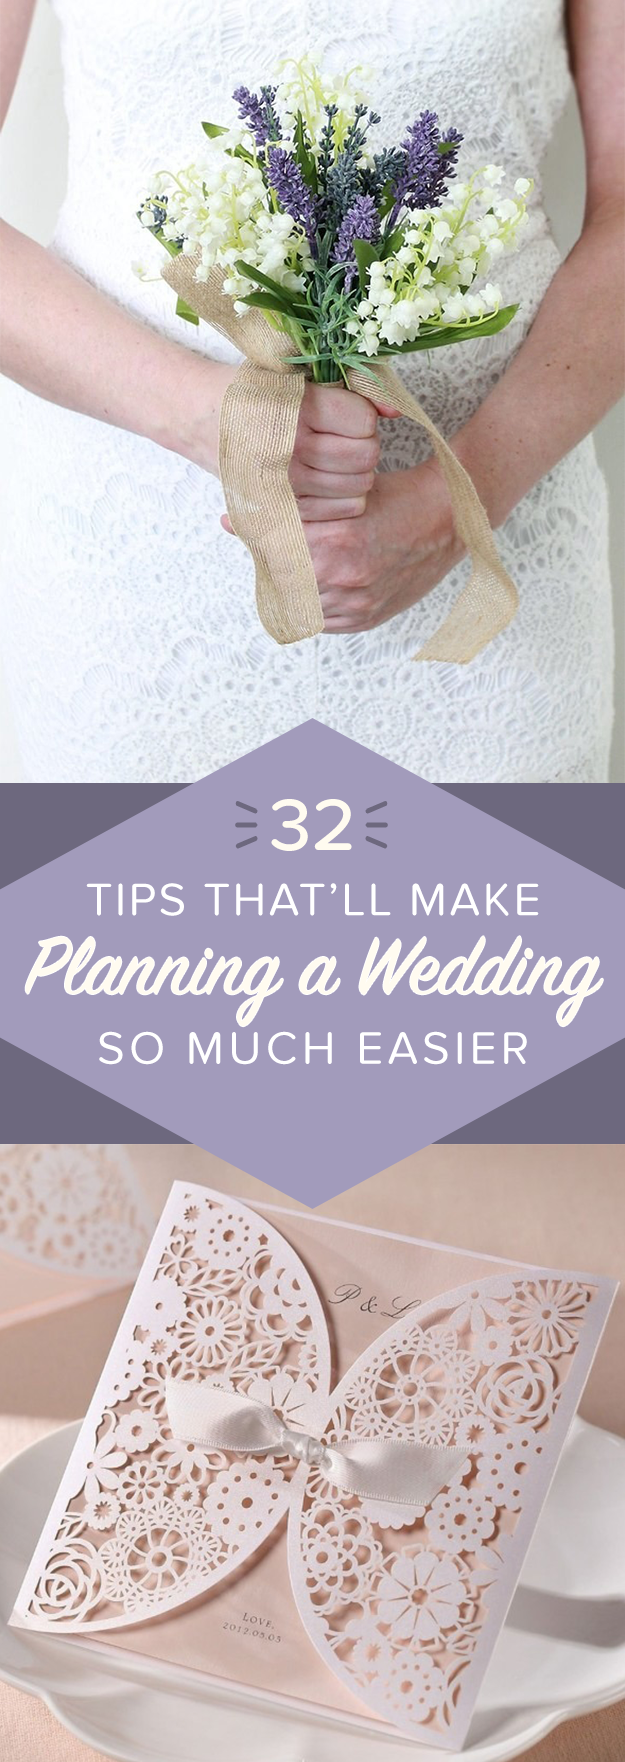 ways to make planning a wedding so much less stressful